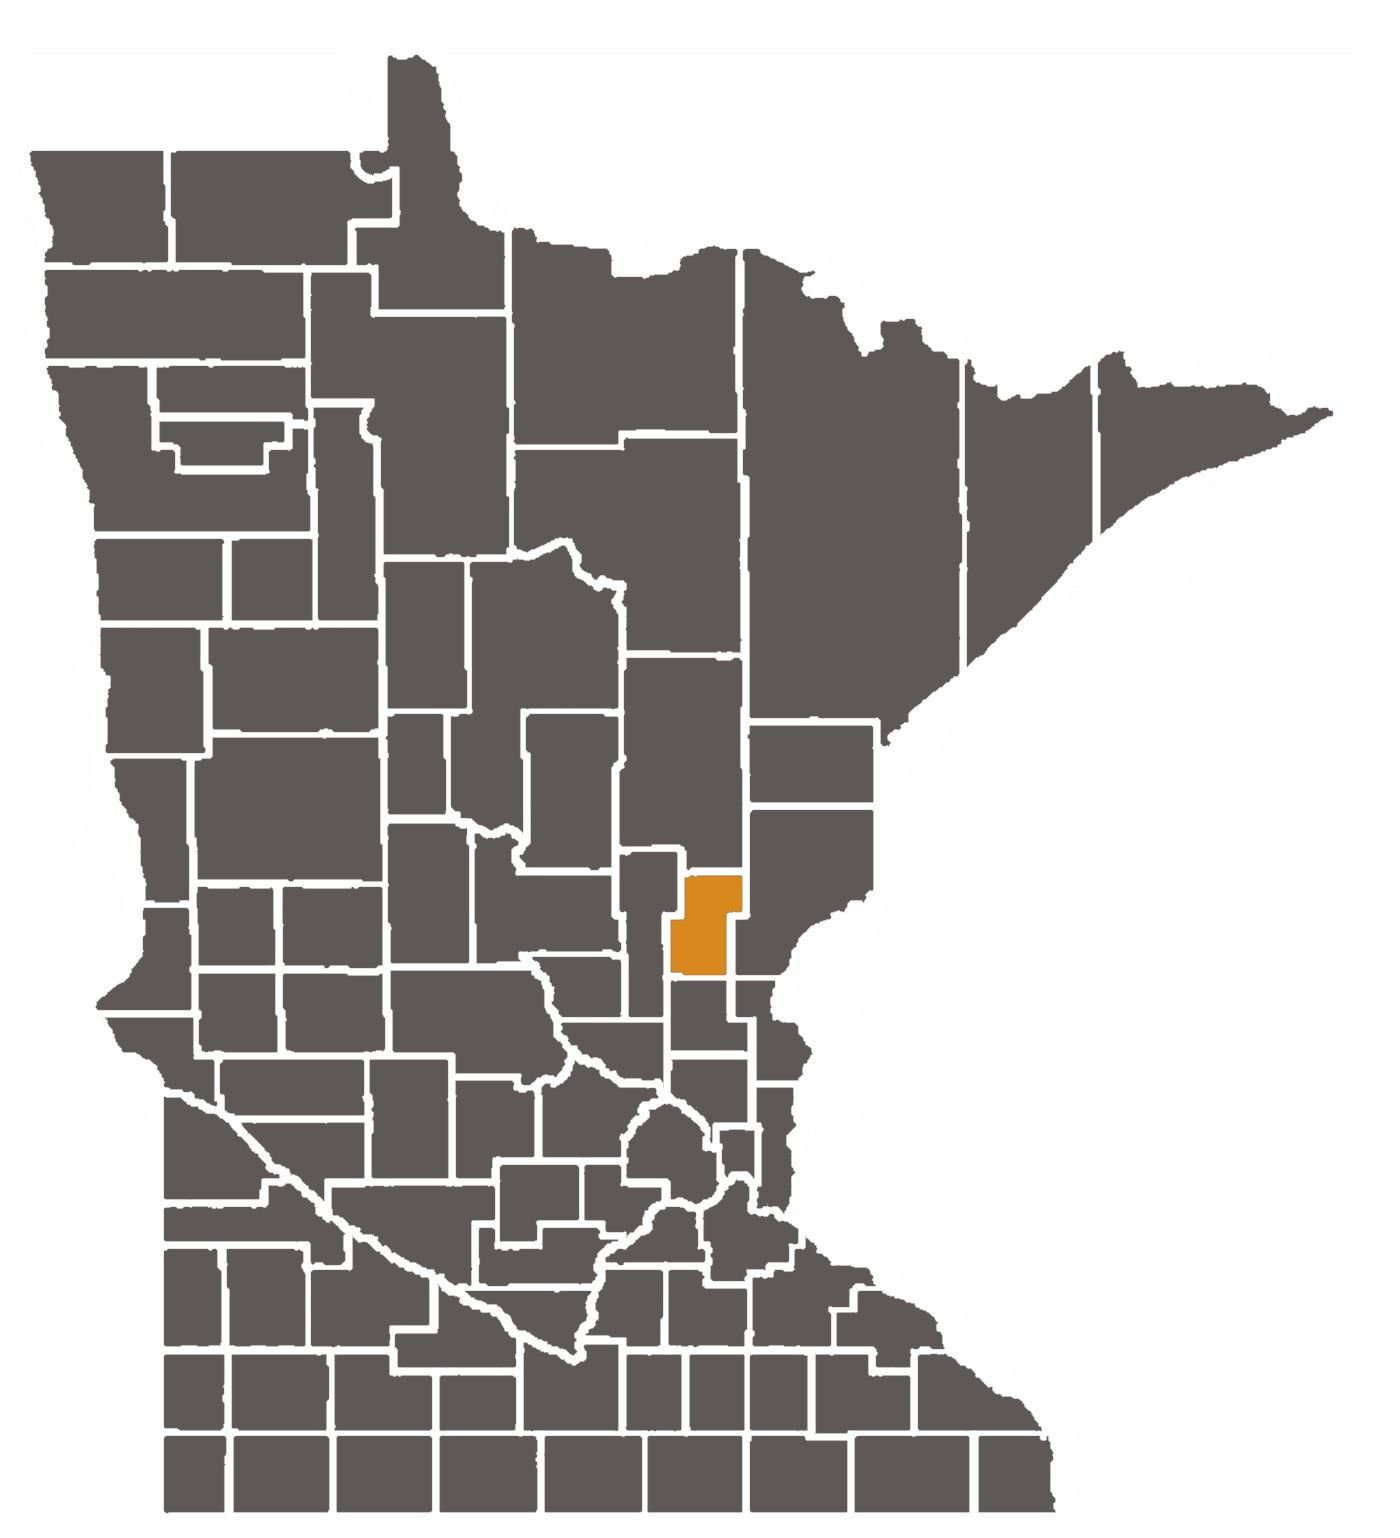 Minnesota map with Kanabec County highlighted.